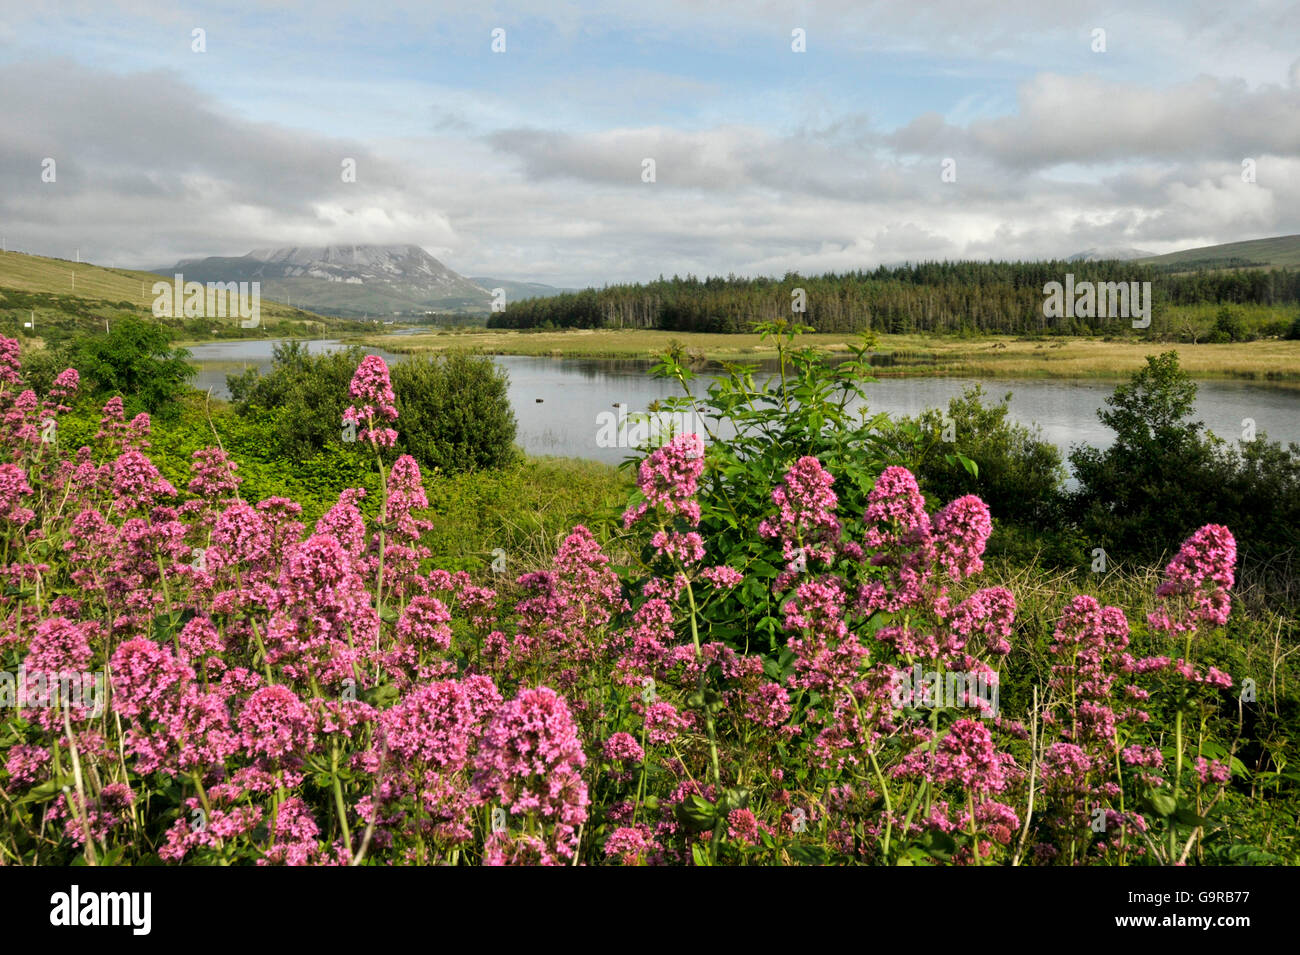 View of Mount Errigal from Gweedore, County Donegal, Ireland / Clady River - Stock Image